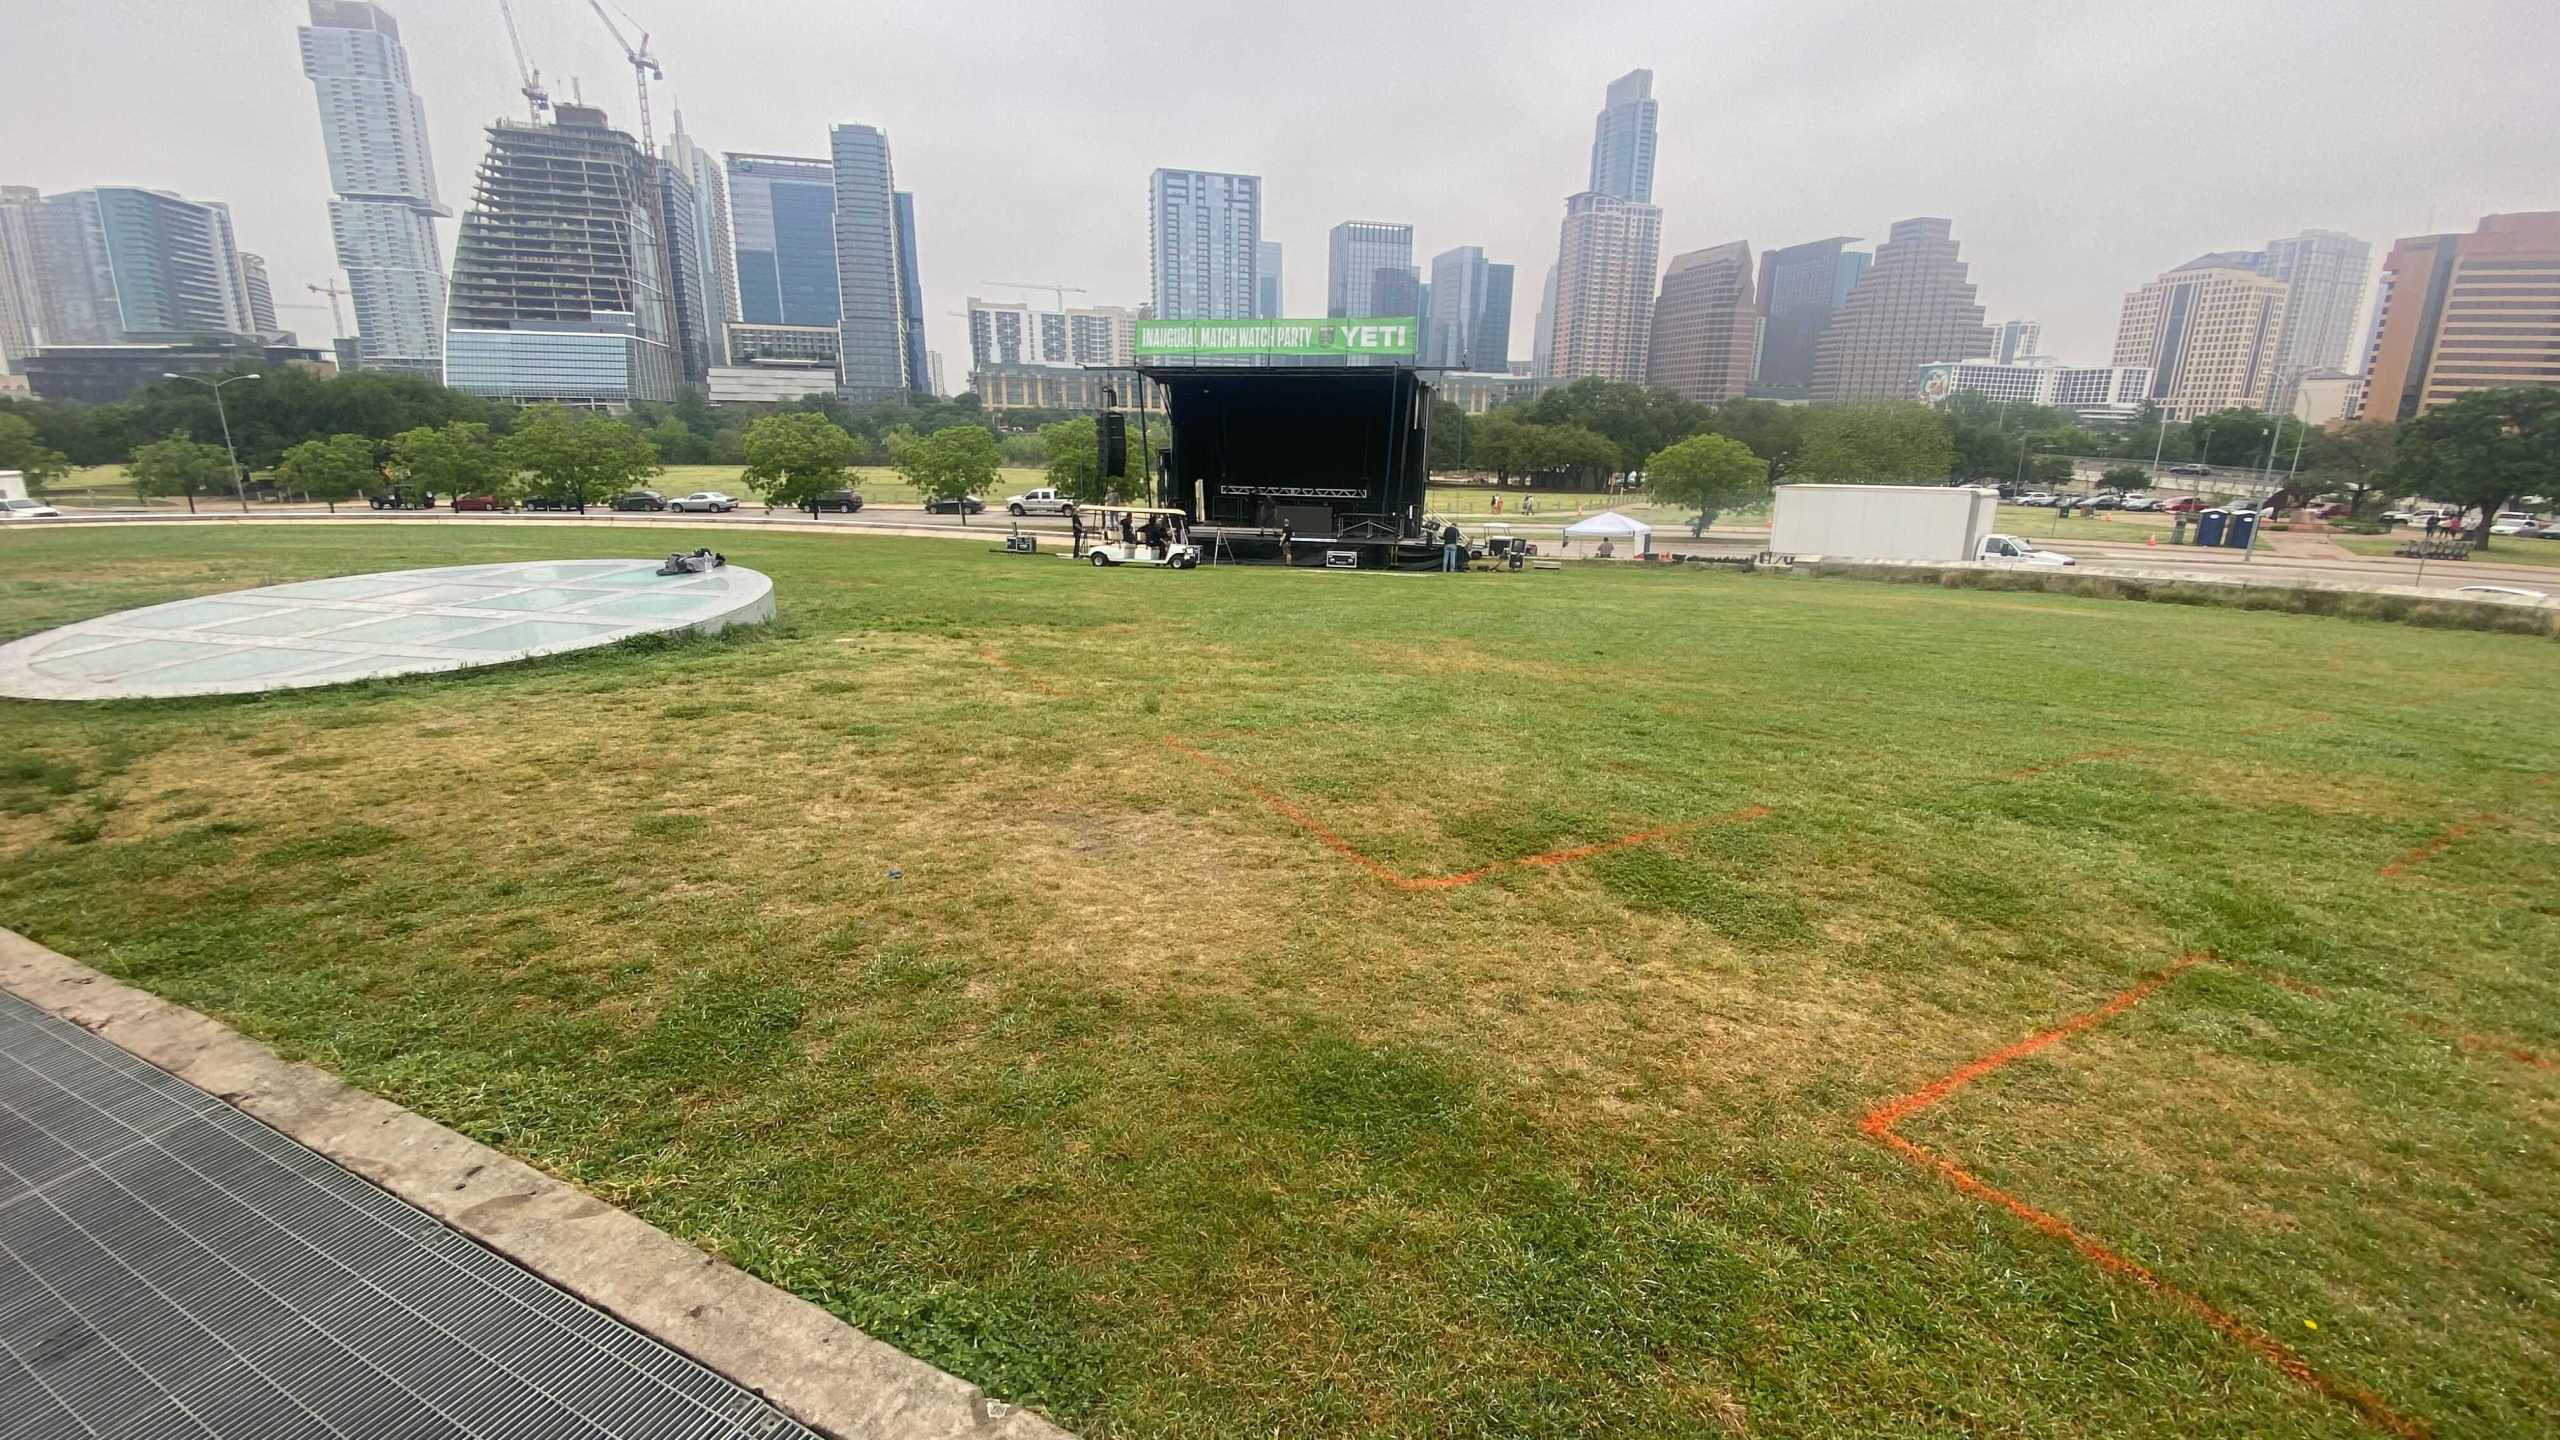 Crews were at the Long Center getting ready for Saturday's Austin FC watch party (KXAN/Todd Bynum)